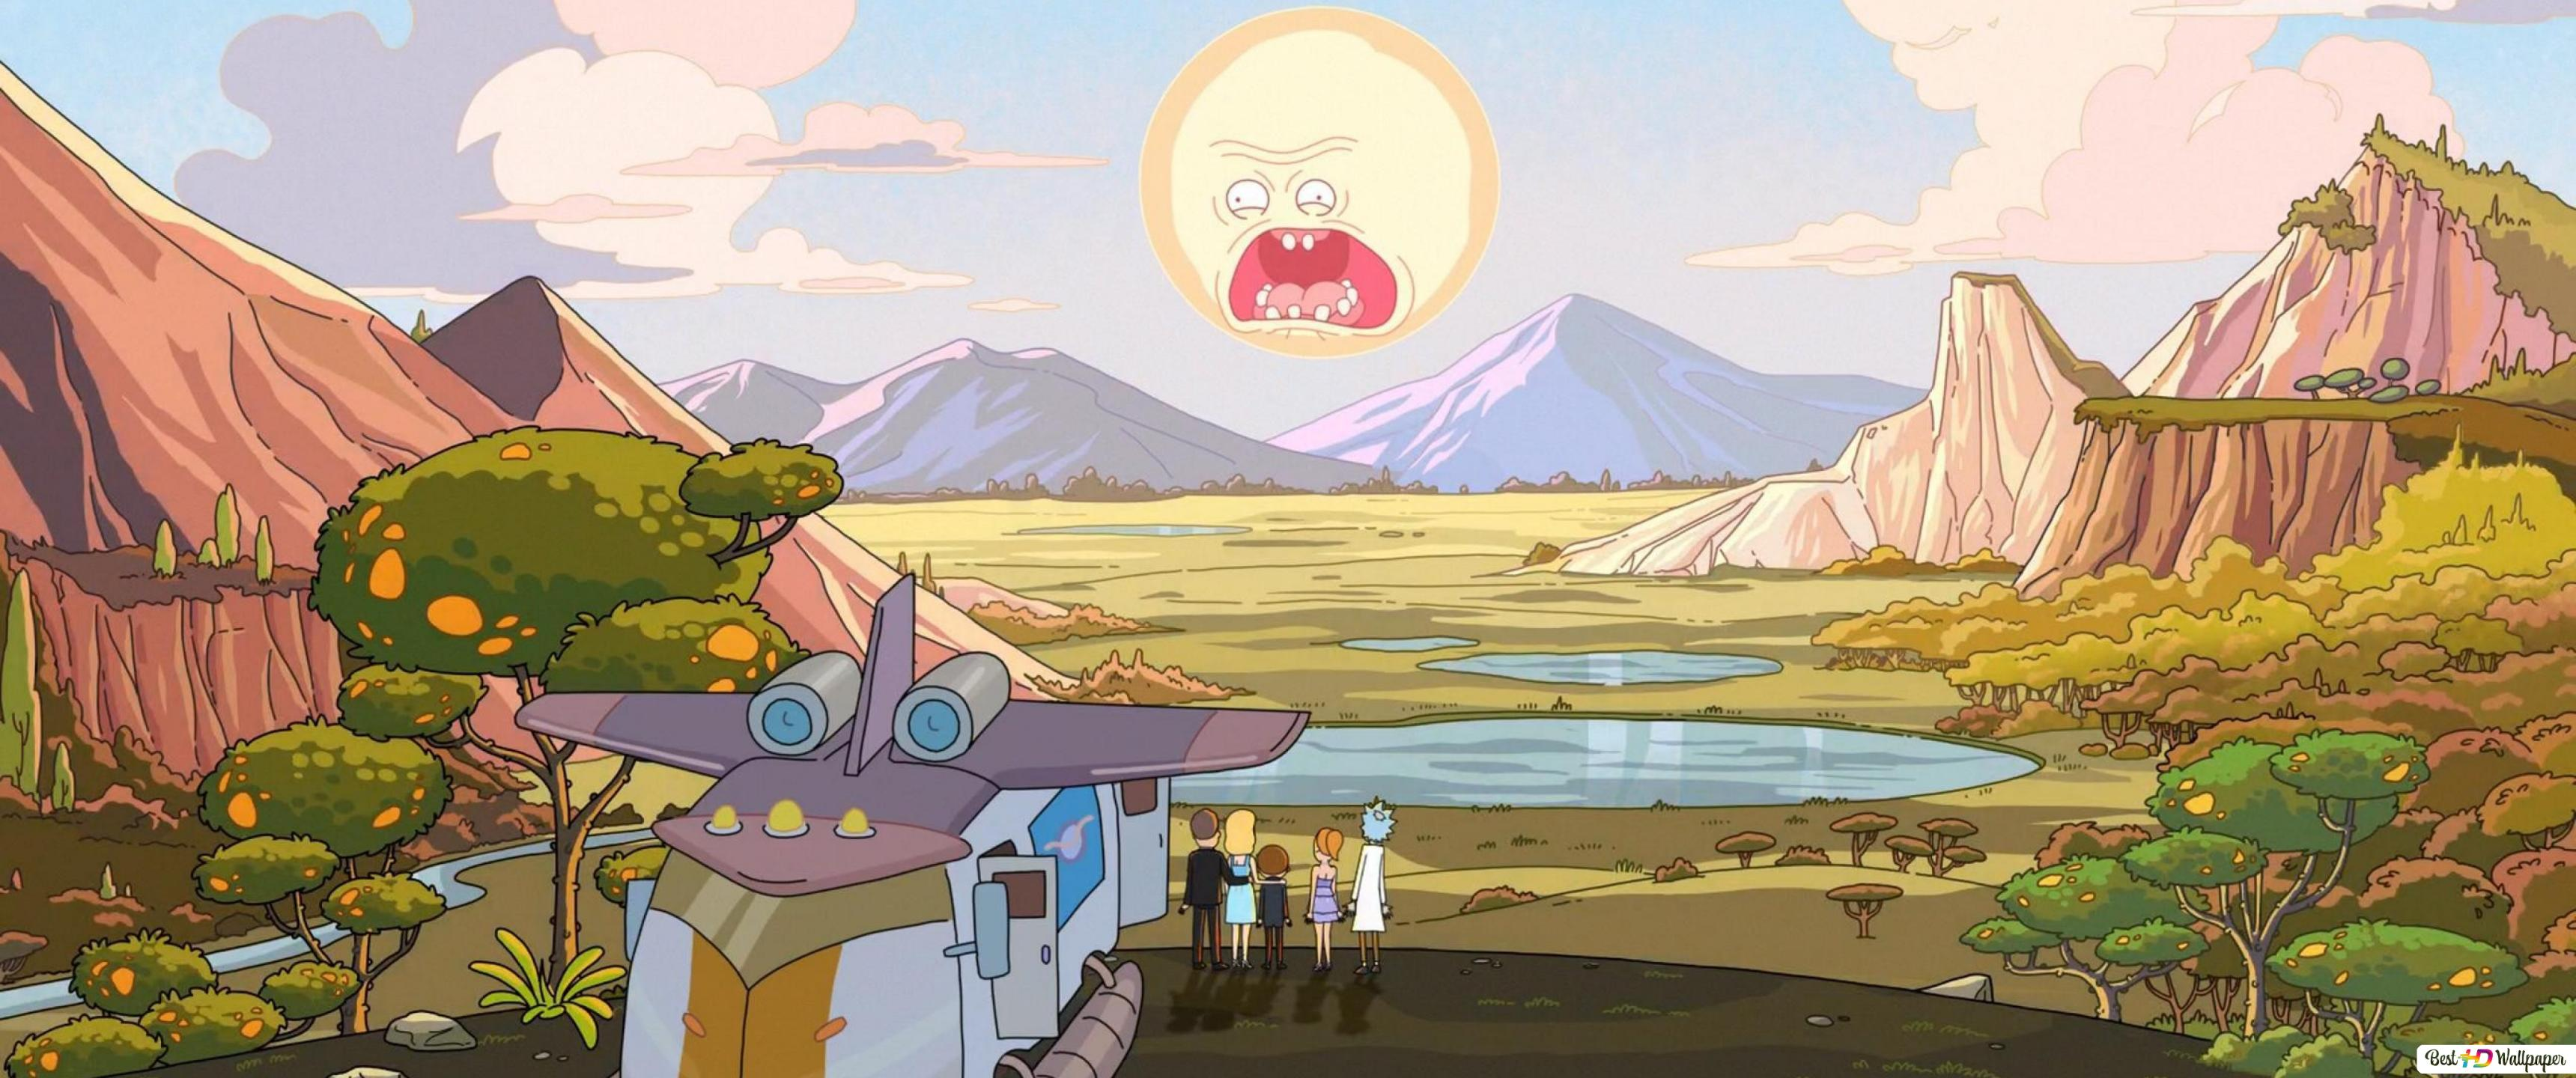 Rick And Morty And Sun Hd Wallpaper Download